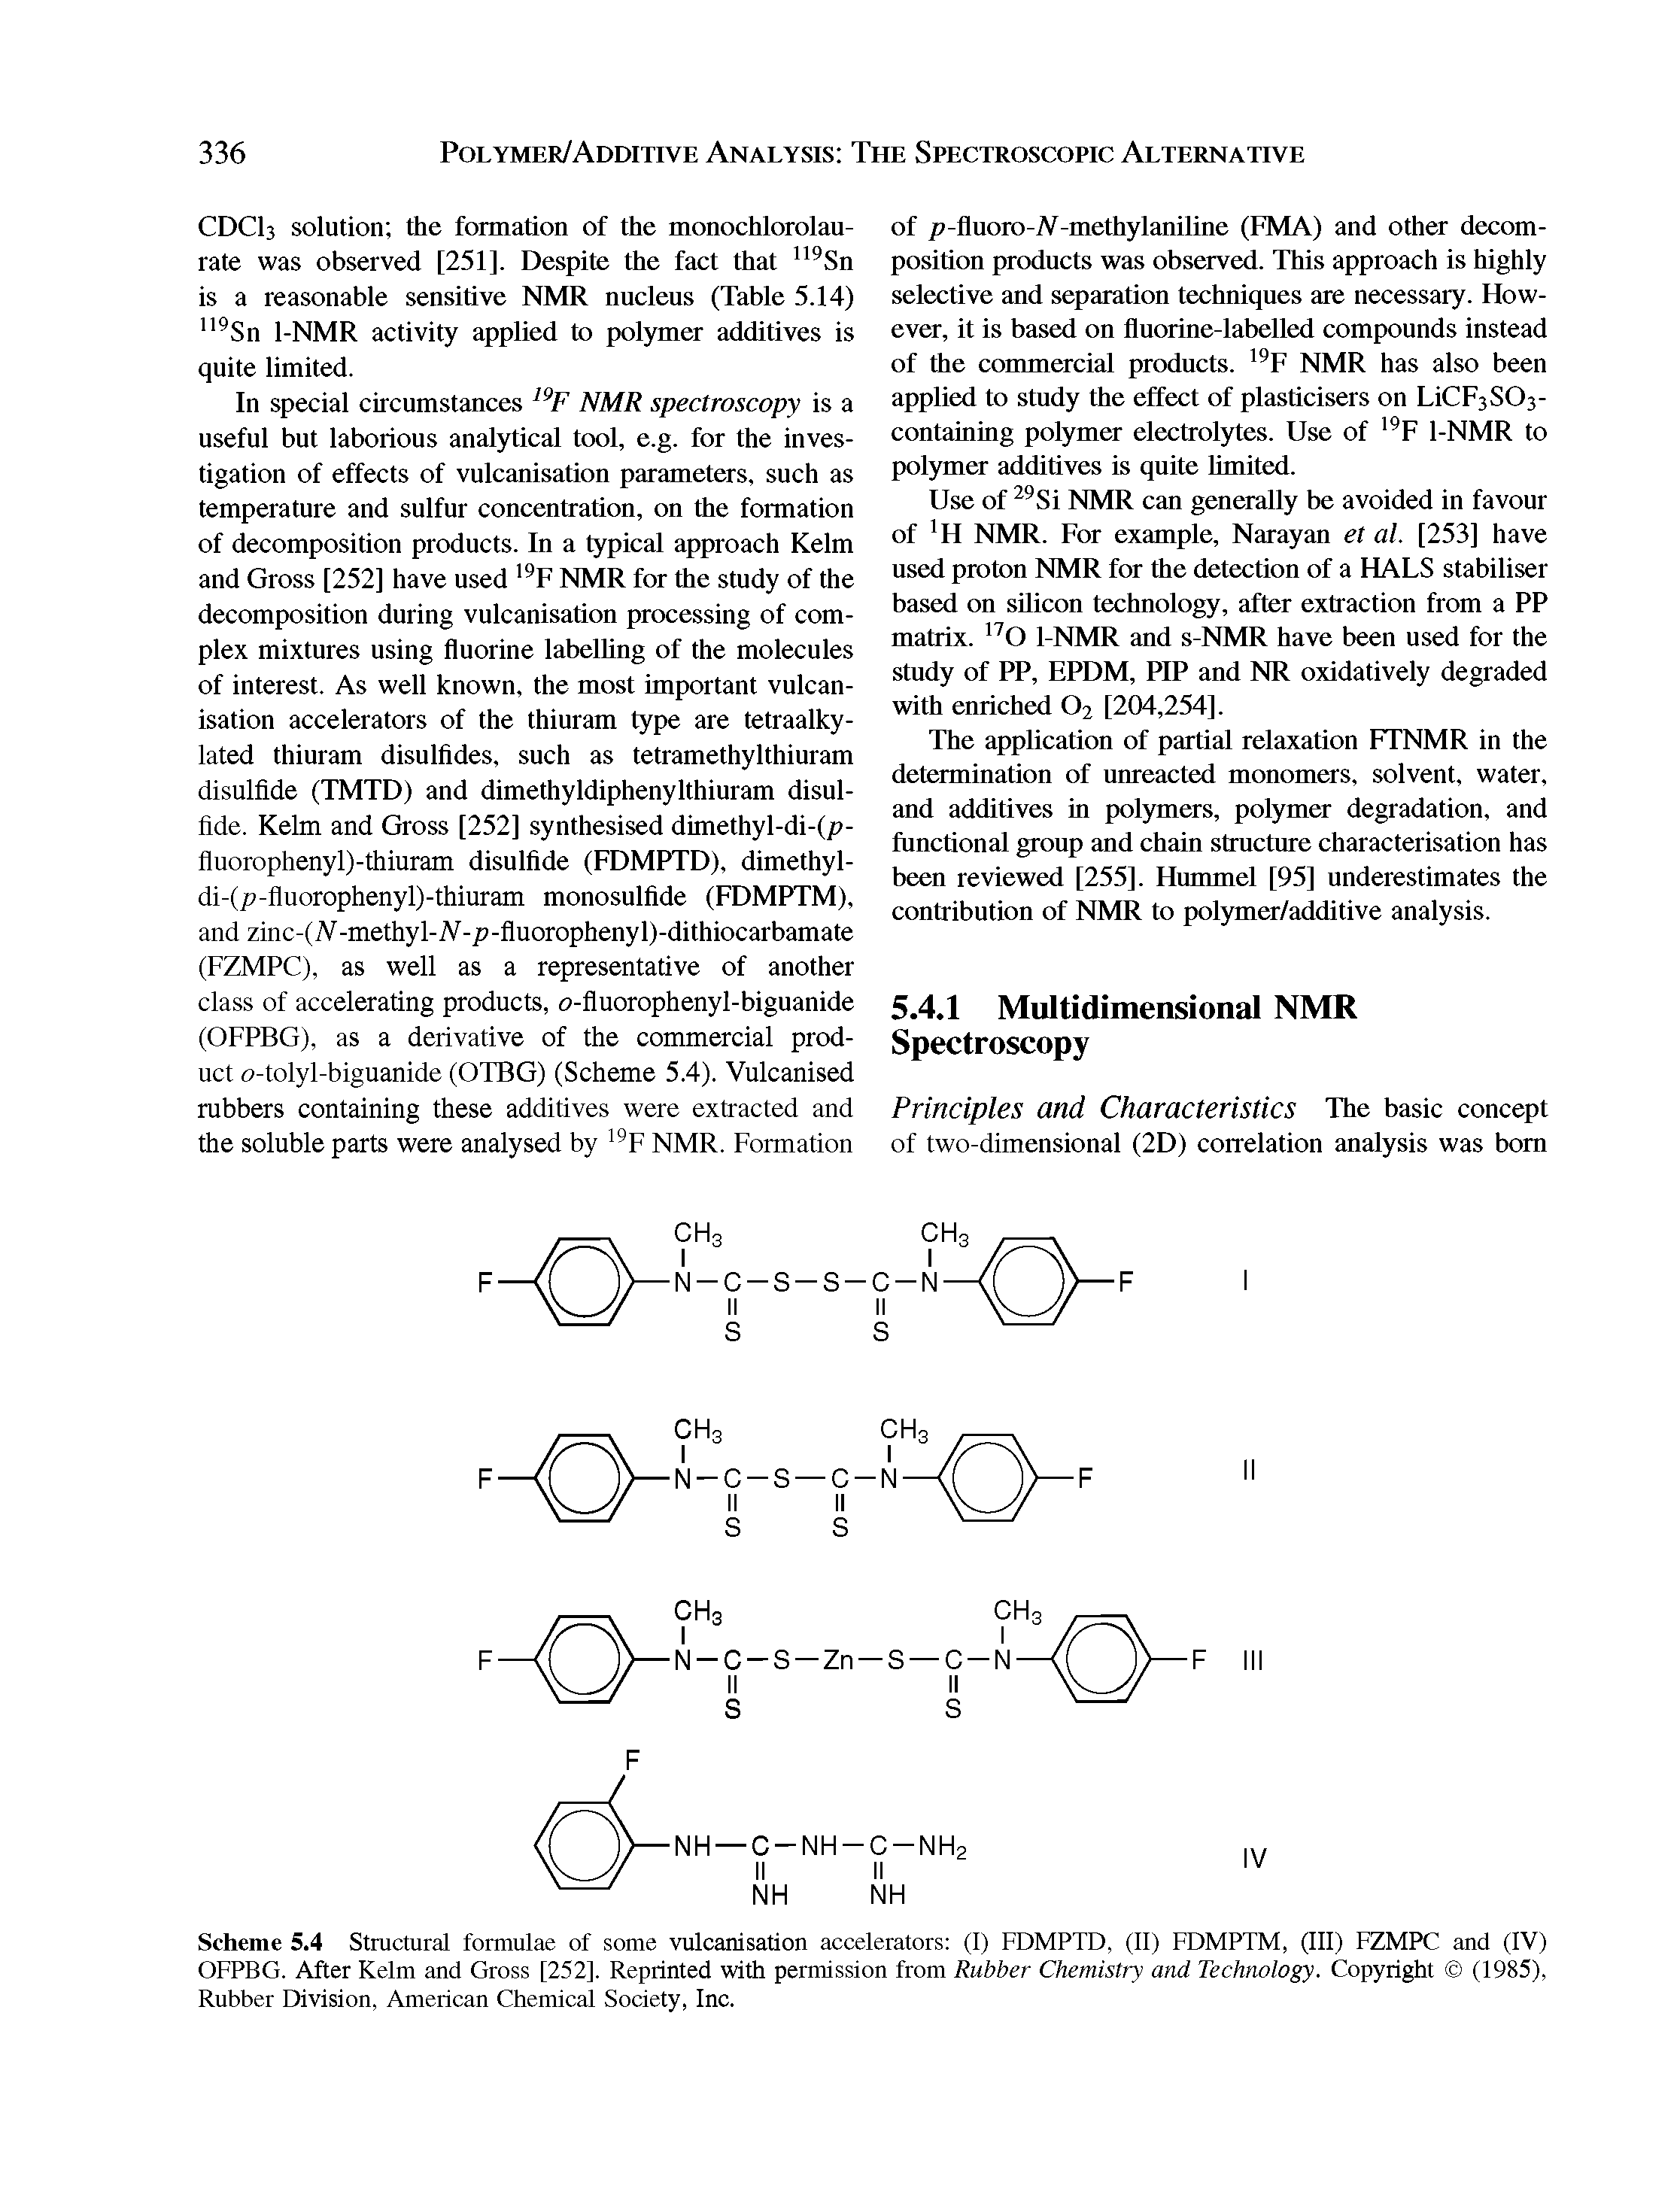 "Scheme 5.4 <a href=""/info/structural_formulas"">Structural formulae</a> of some vulcanisation accelerators (I) FDMPTD, (II) FDMPTM, (III) FZMPC and (IV) OFPBG. After Kelm and Gross [252]. Reprinted with permission from <a href=""/info/rubber_chemistry"">Rubber Chemistry</a> and Technology. Copyright (1985), Rubber Division, <a href=""/info/american_chemical"">American Chemical</a> Society, Inc."